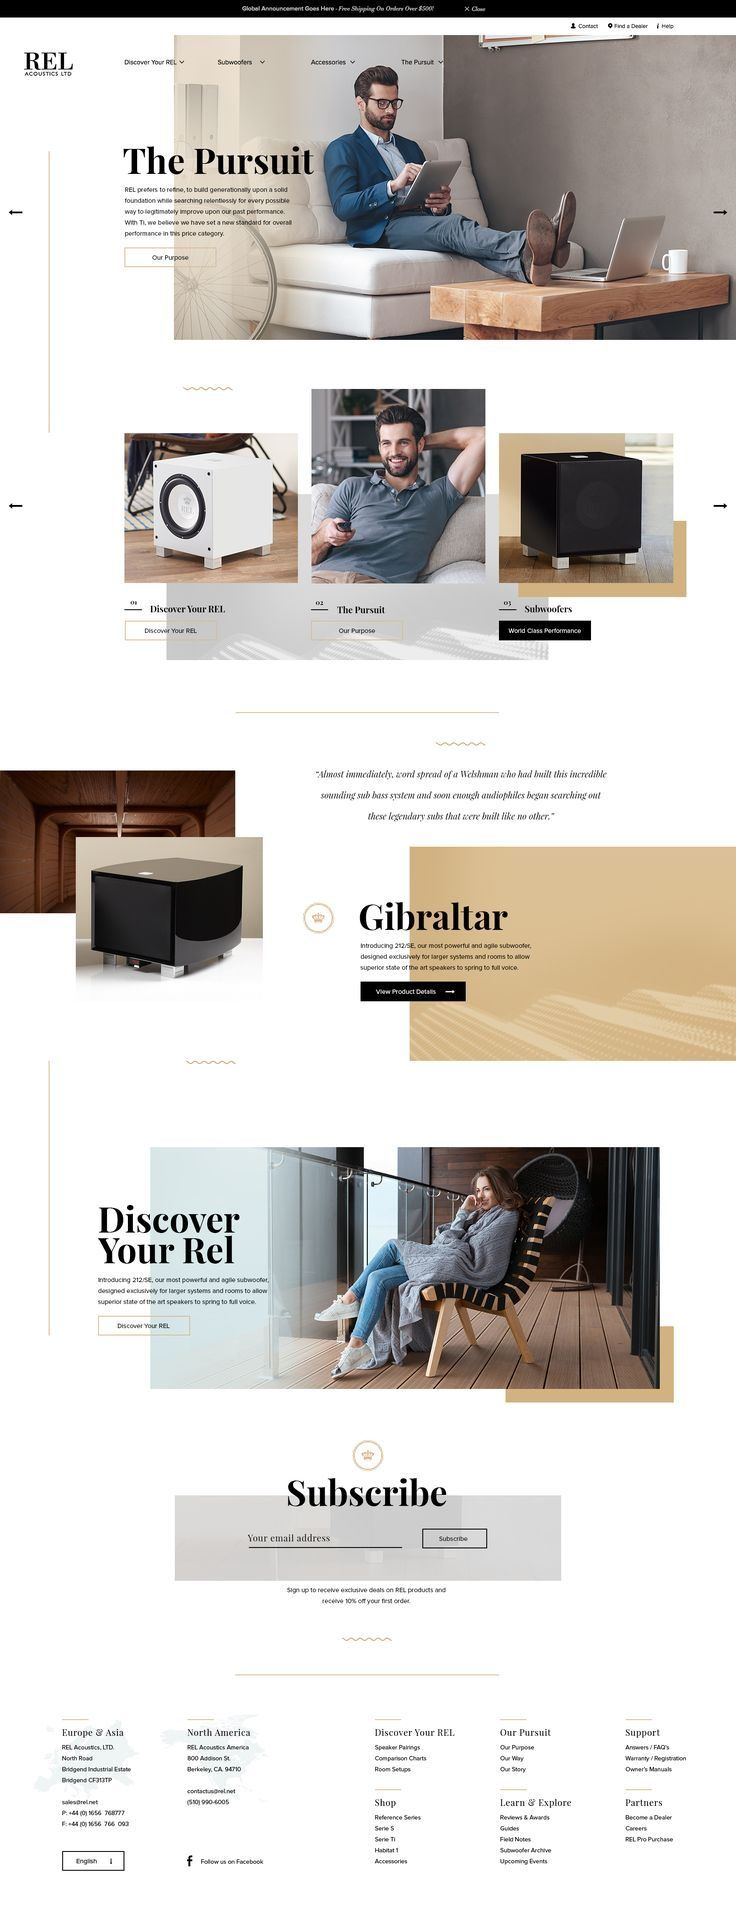 333 best .DESIGN / web design images on Pinterest | Website designs ...